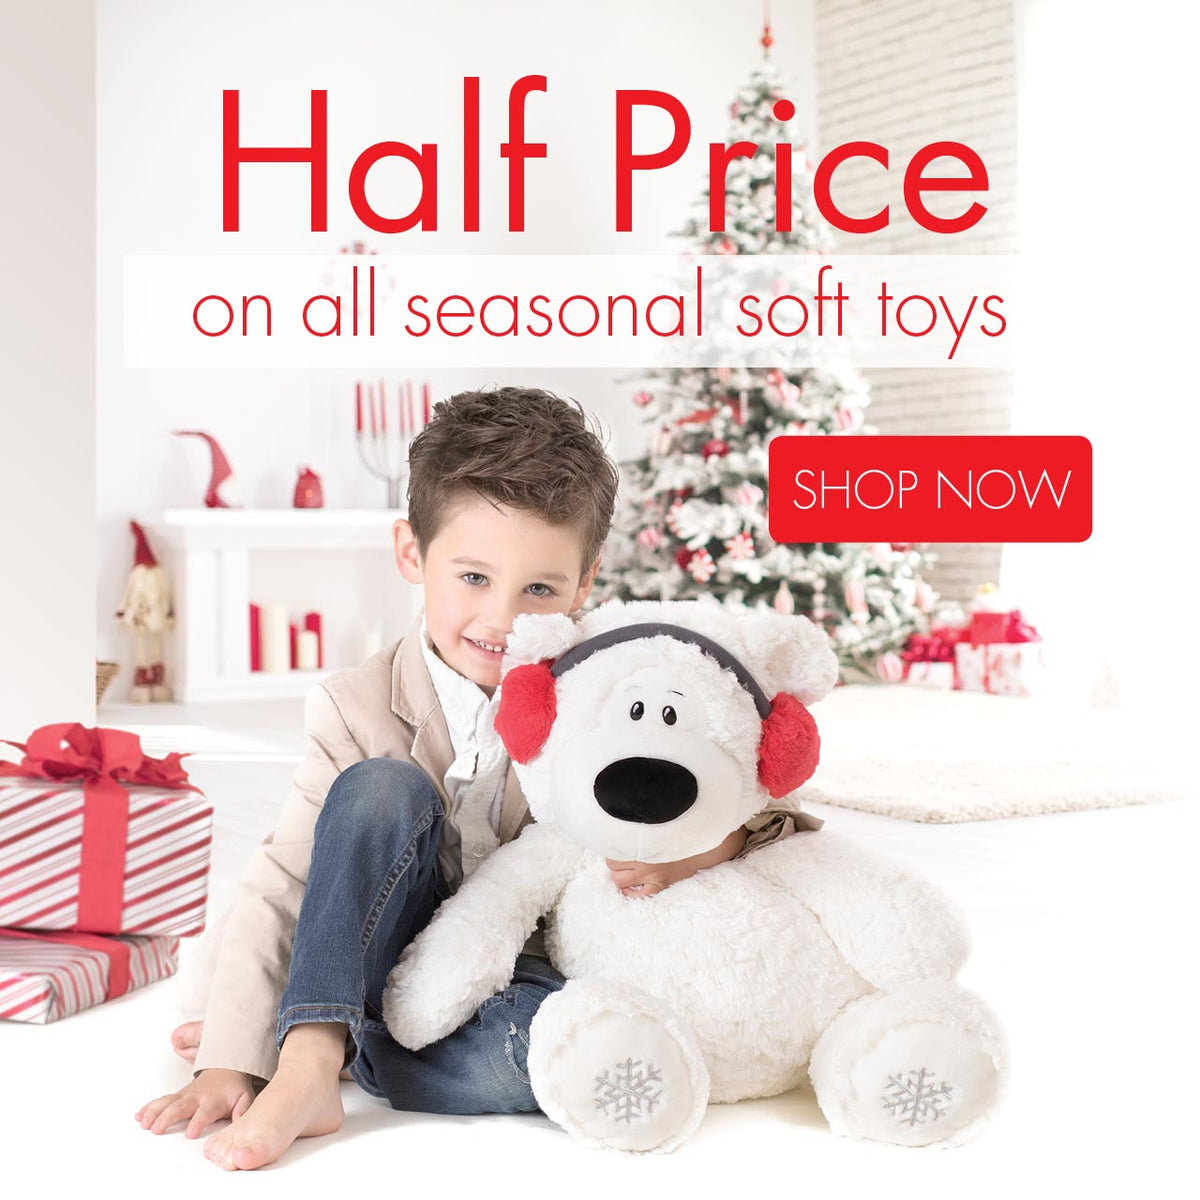 Half Price on all seasonal soft toys